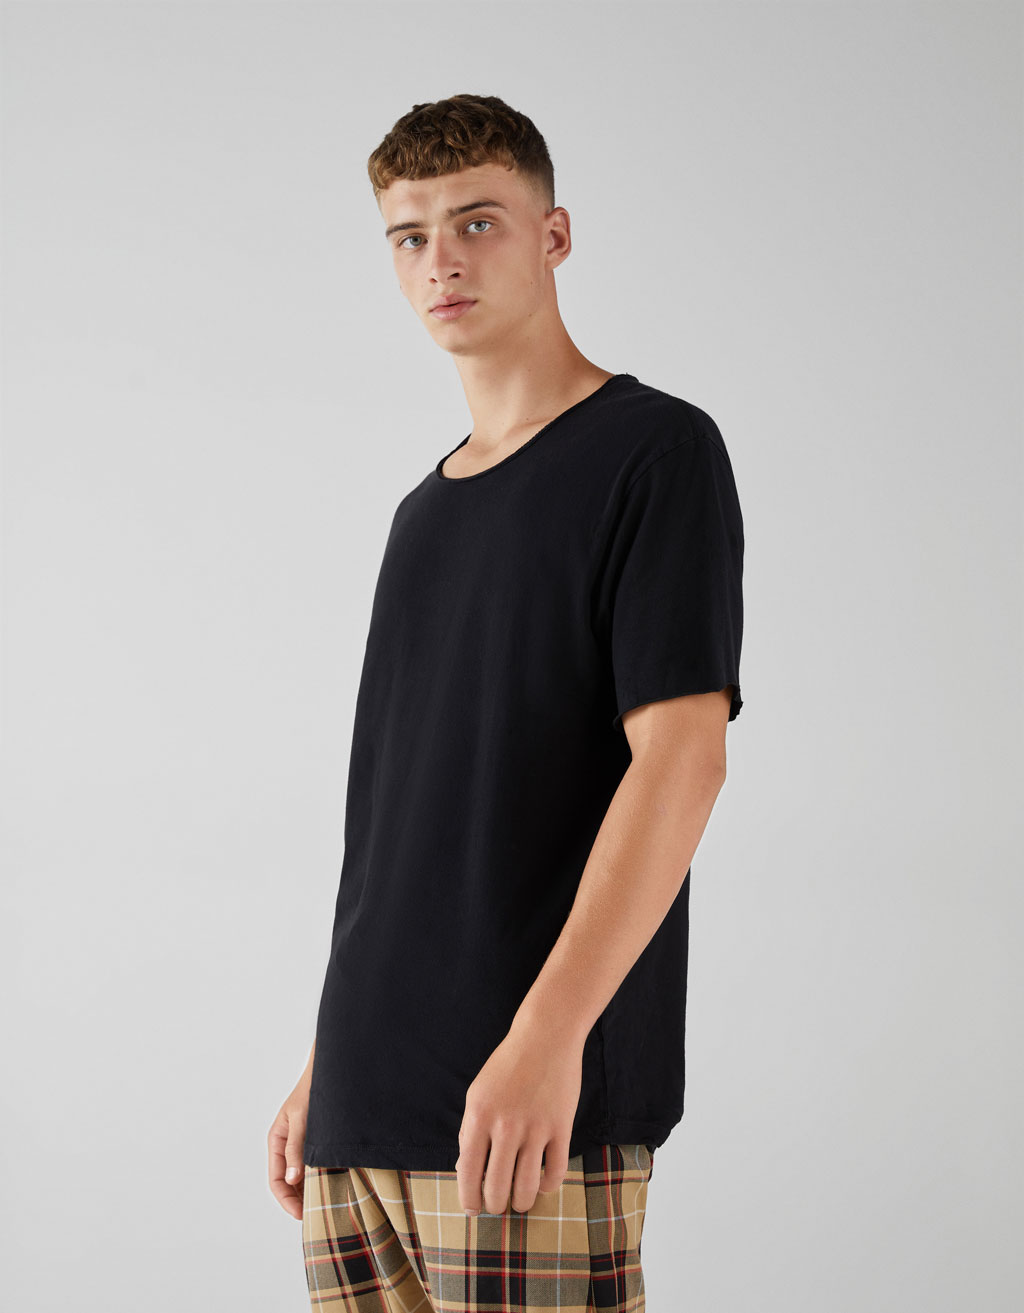 Plain t-shirt with ripped neck